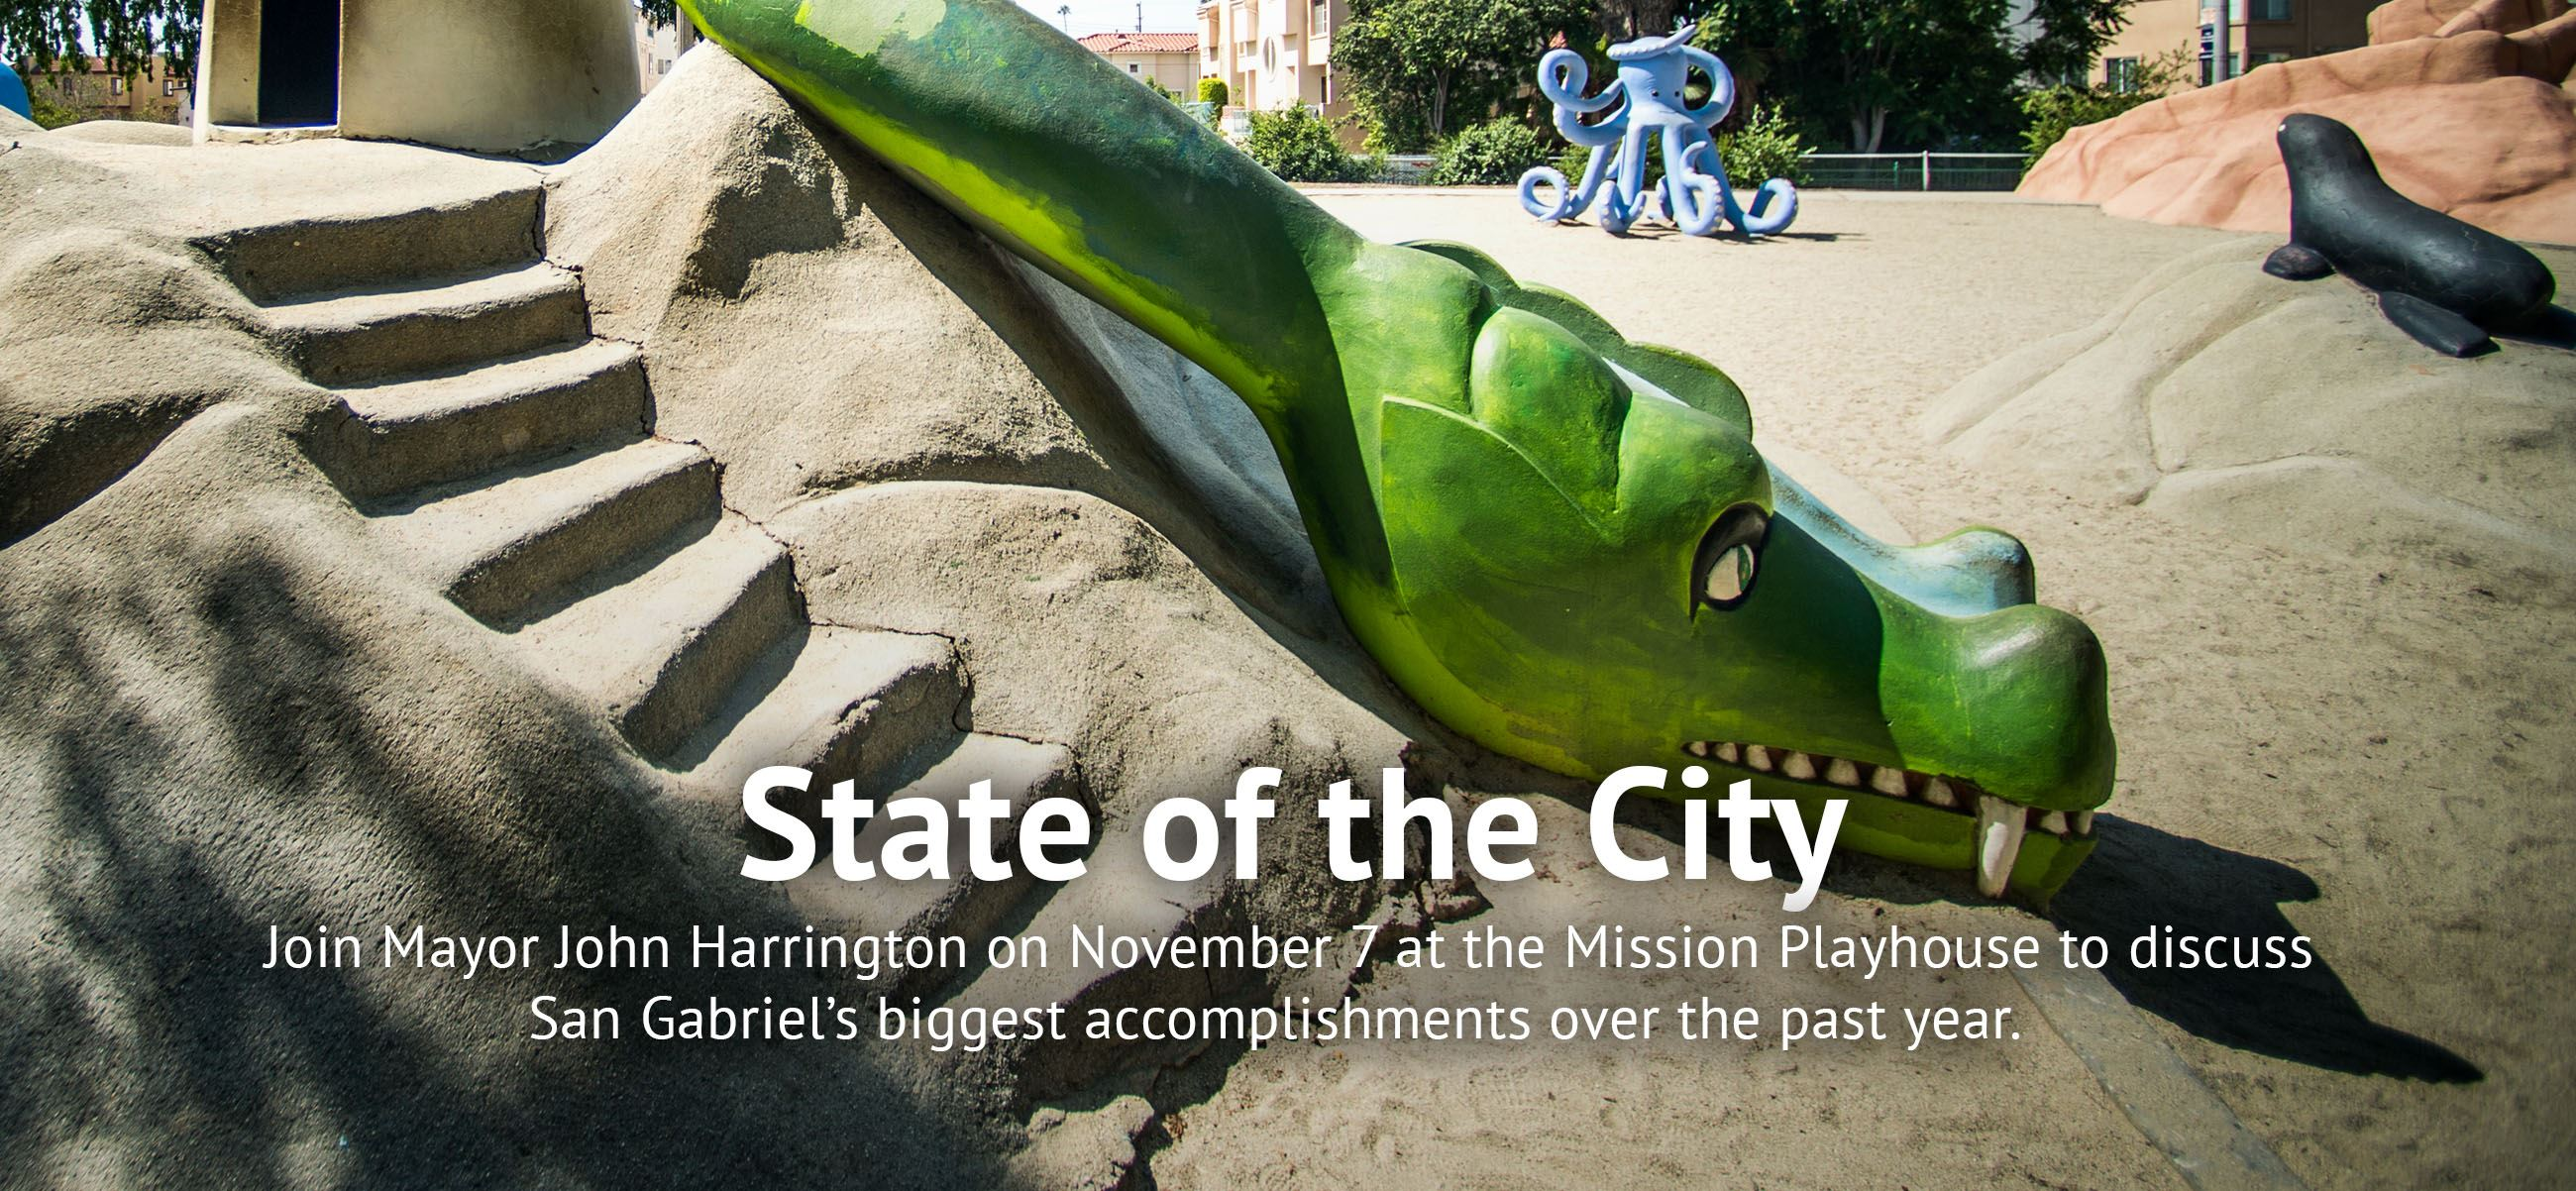 State of the City -  Join Mayor John Harrington at the Playhouse on November 7 to discuss San Gabrie